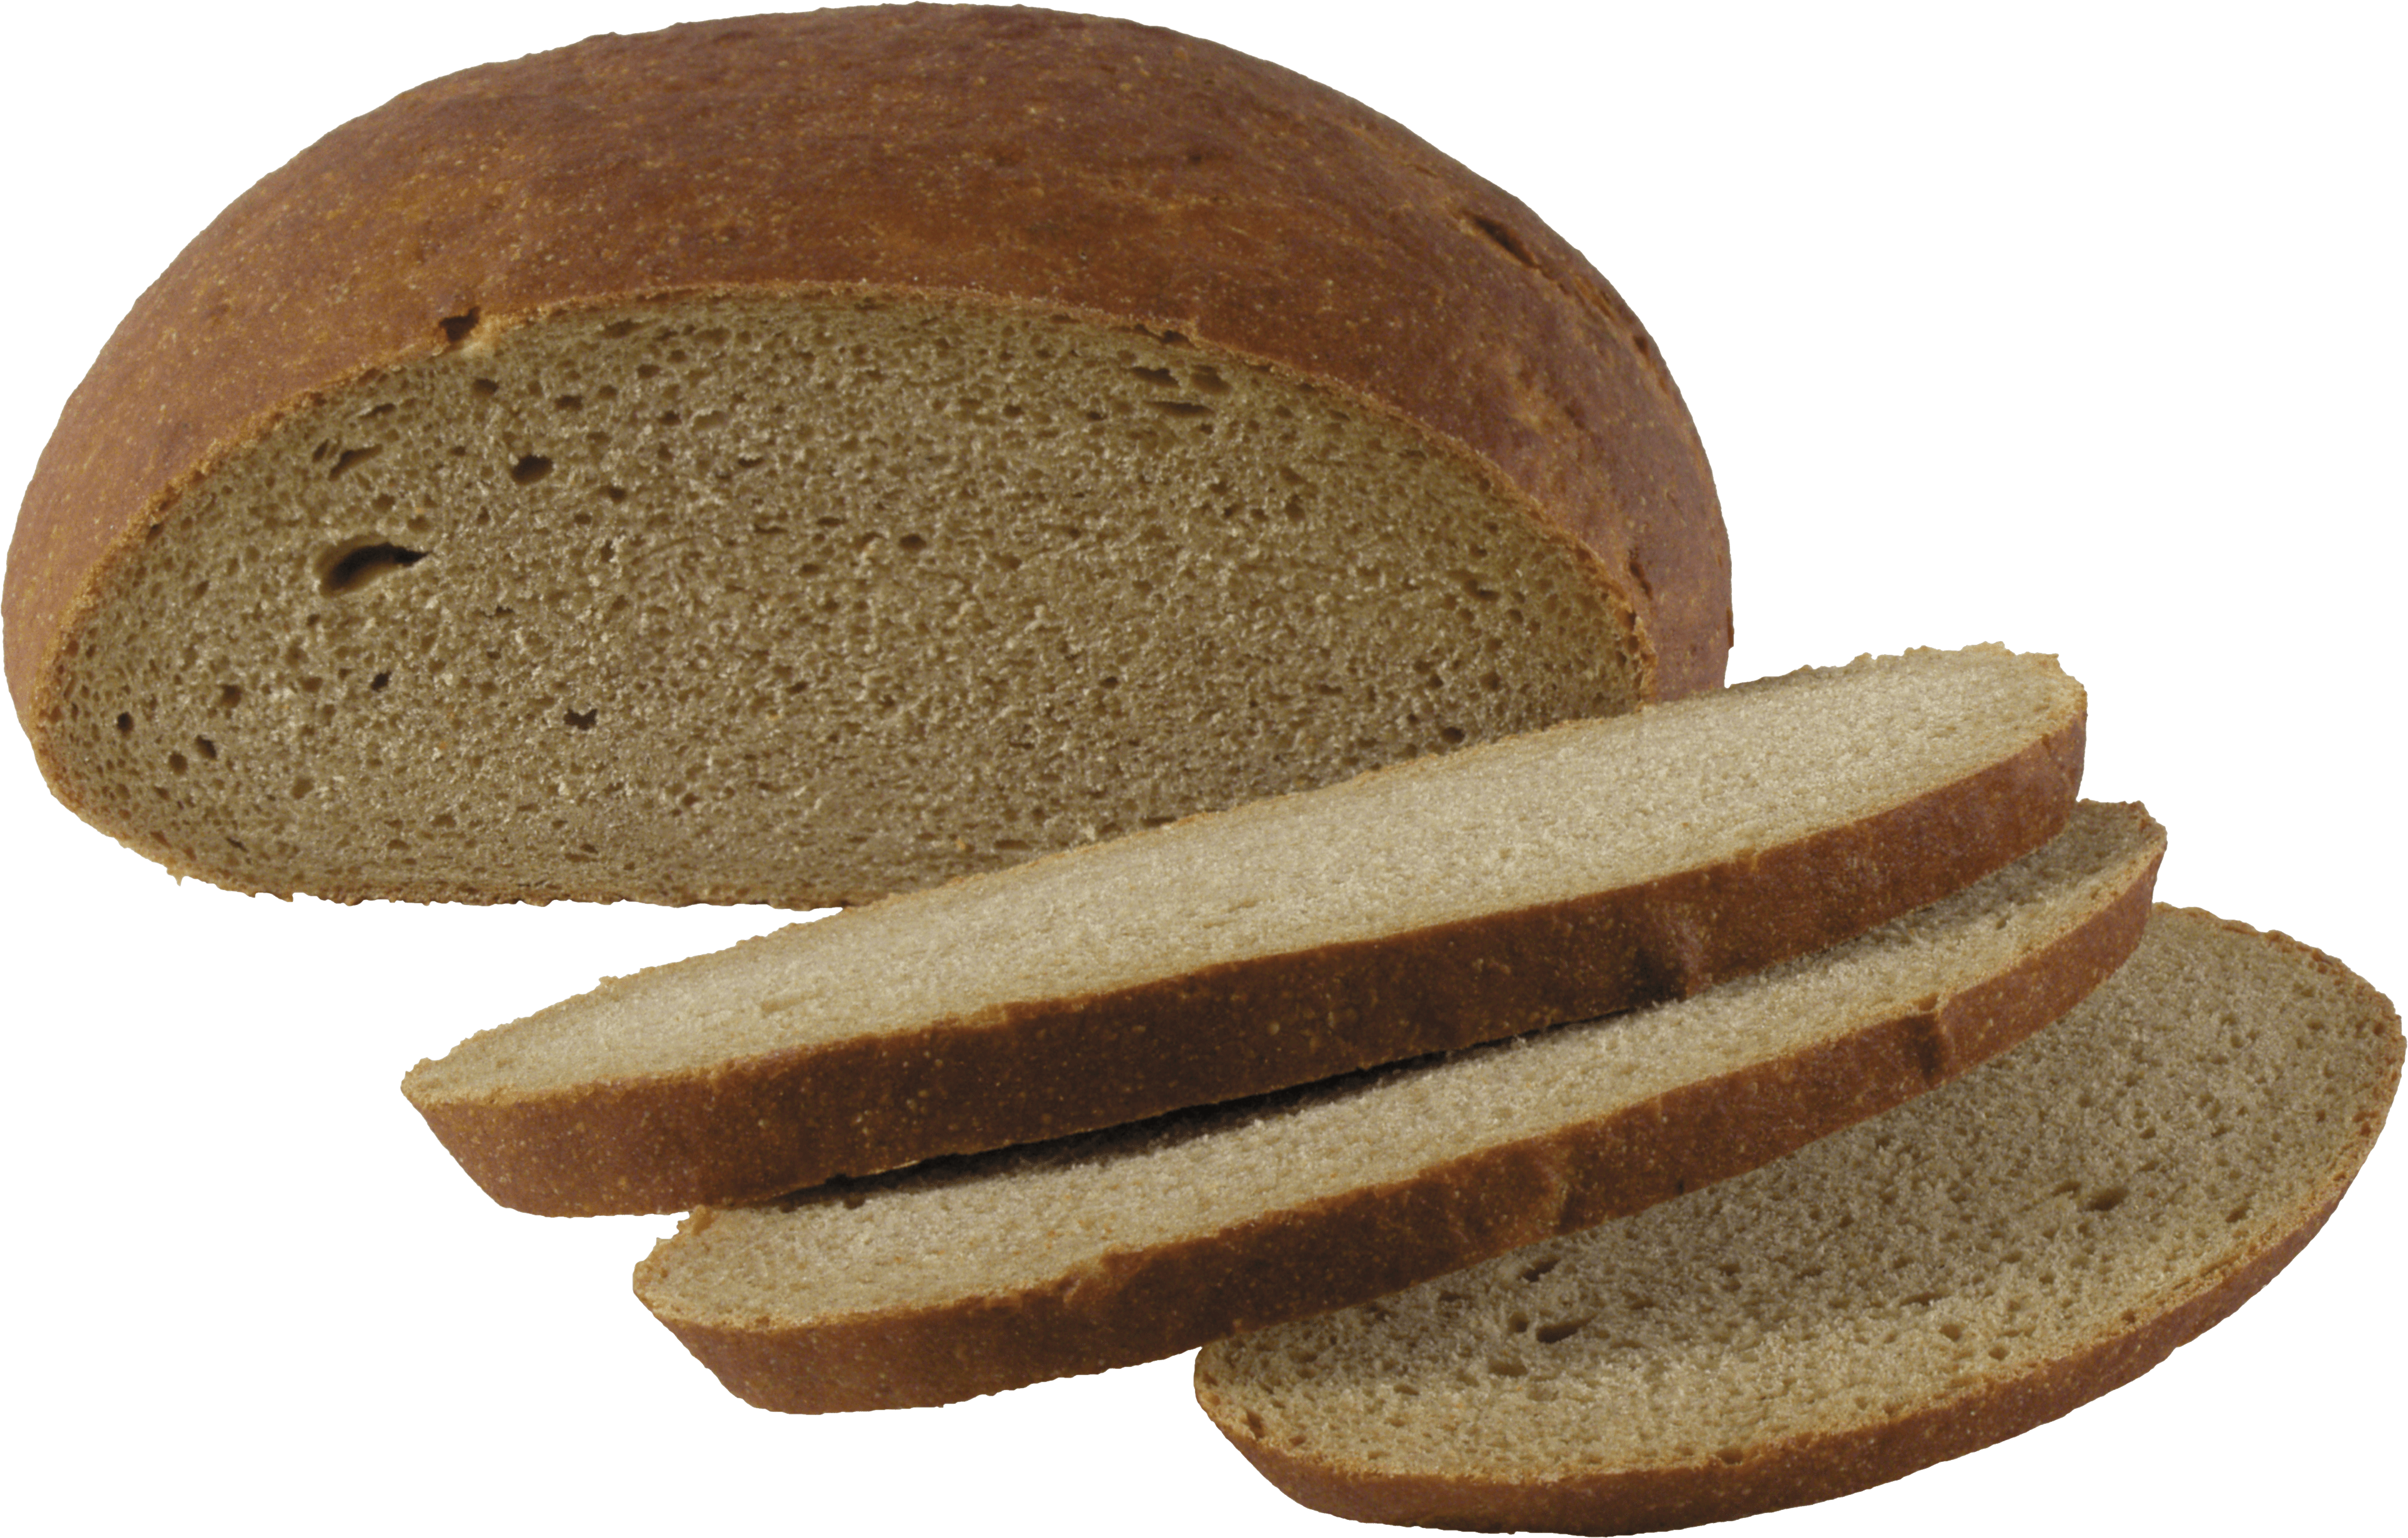 Gray Bread Png Image PNG Image